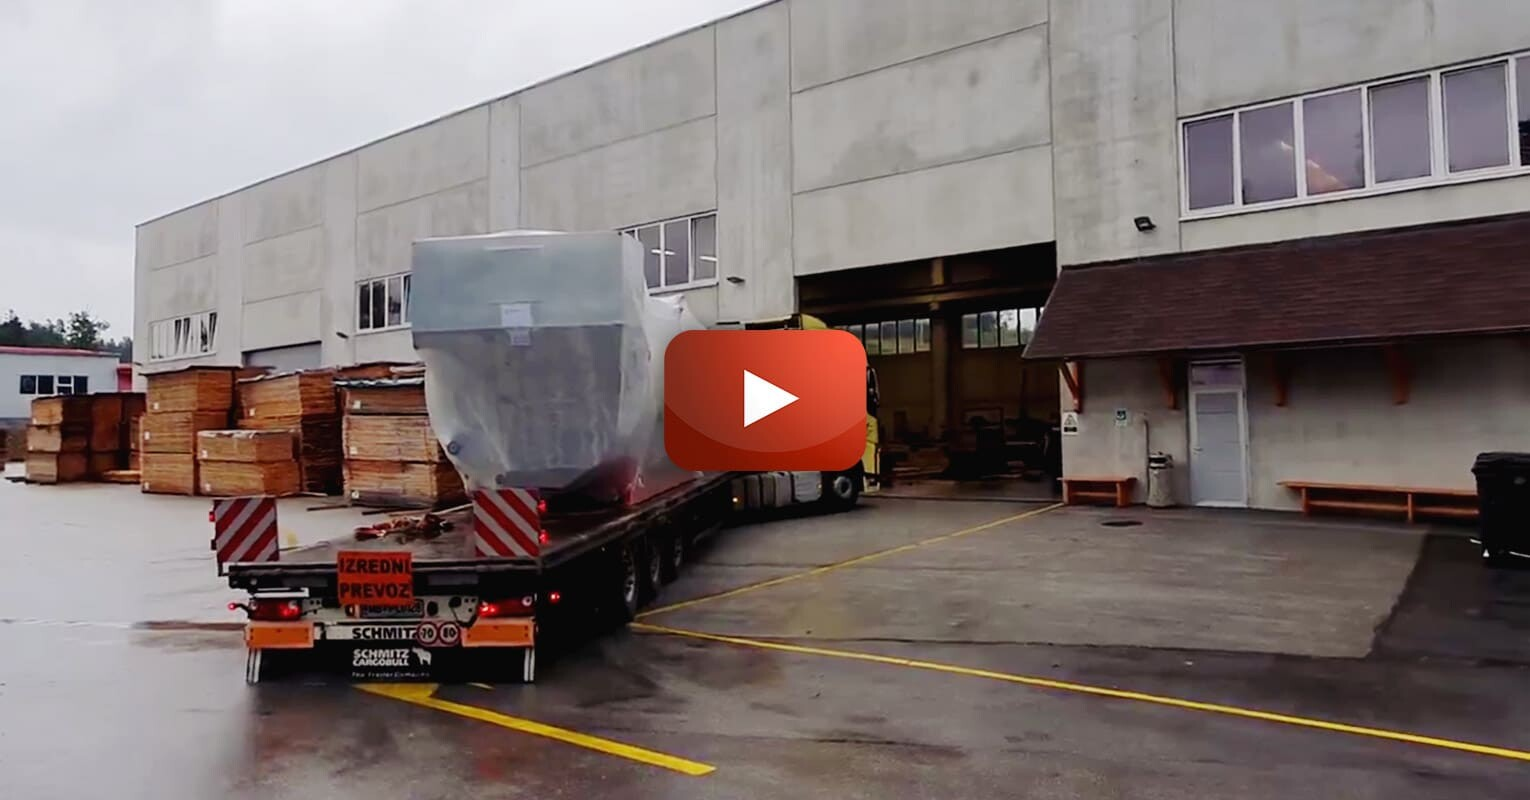 Comark Transporting 16T Cargo into Unloading Position - Comark will also do the Seaworthy Packing